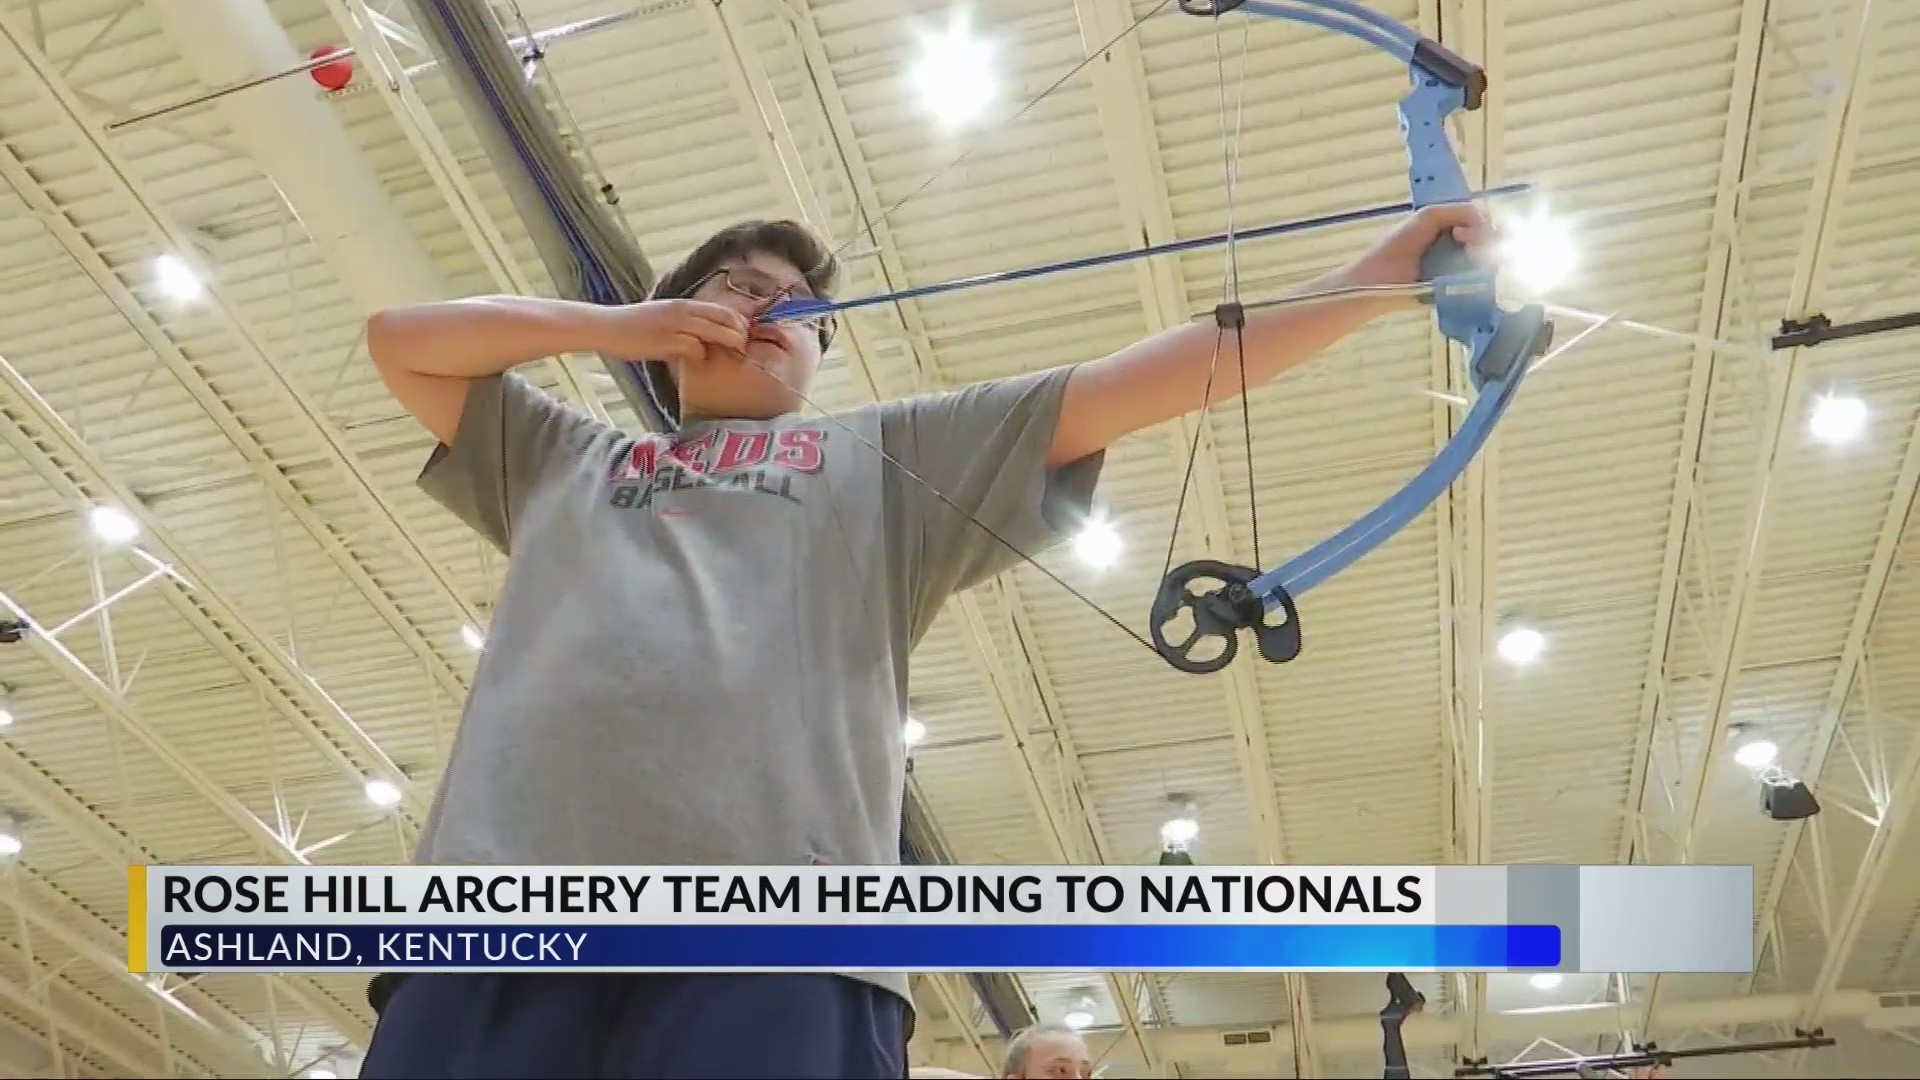 Local archery team heading to nationals